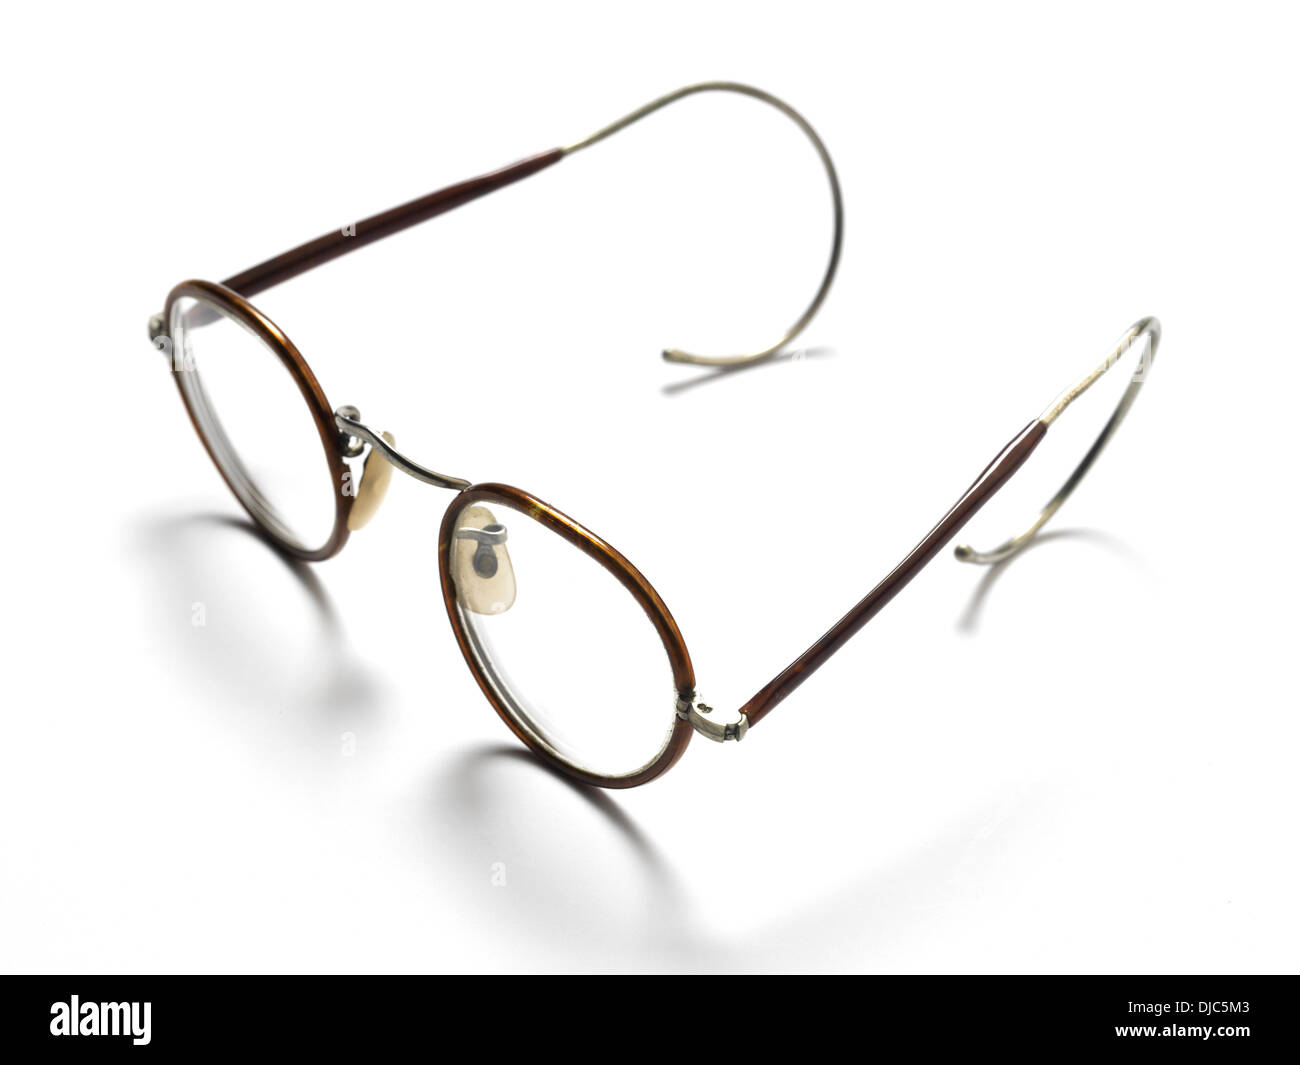 Old Fashioned Glasses Frame : Pair of old fashioned glasses with wire frames Stock Photo ...